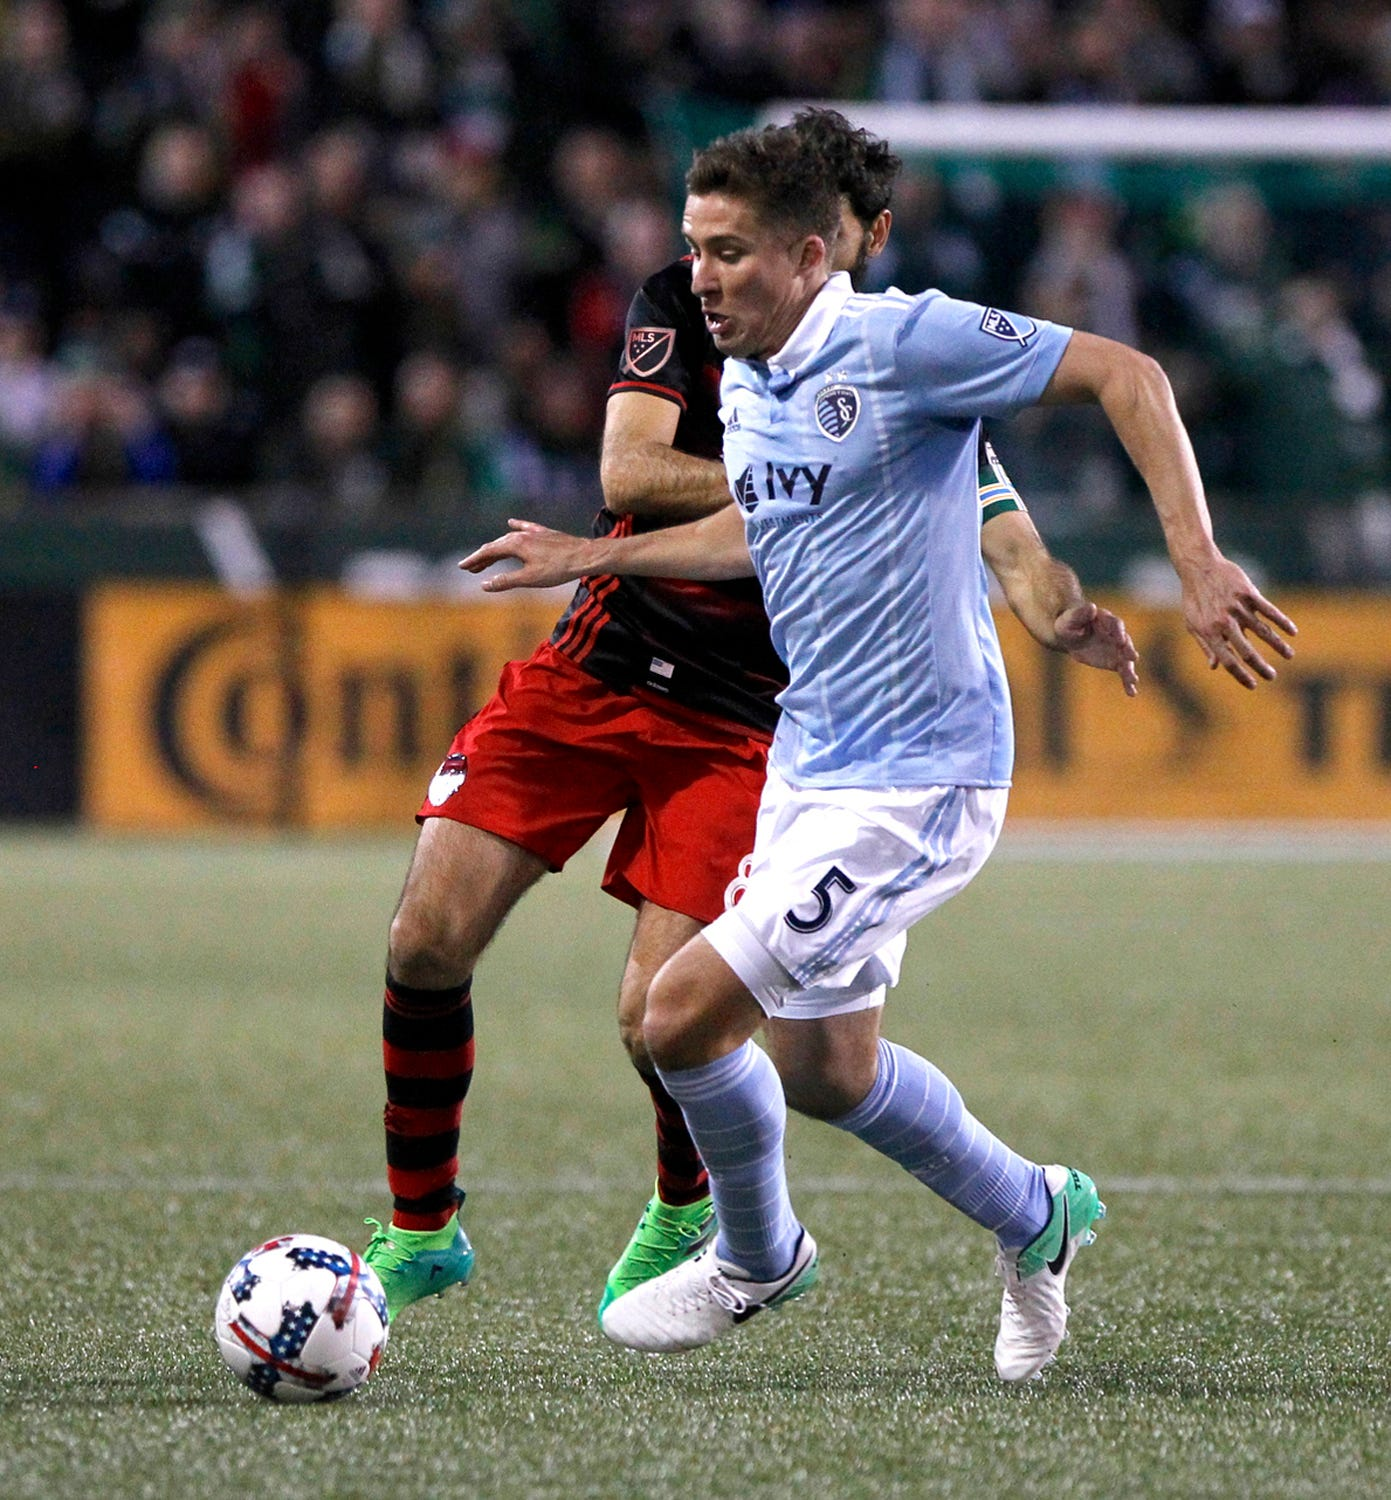 Sporting KC beats the Timbers 1-0 in Portland